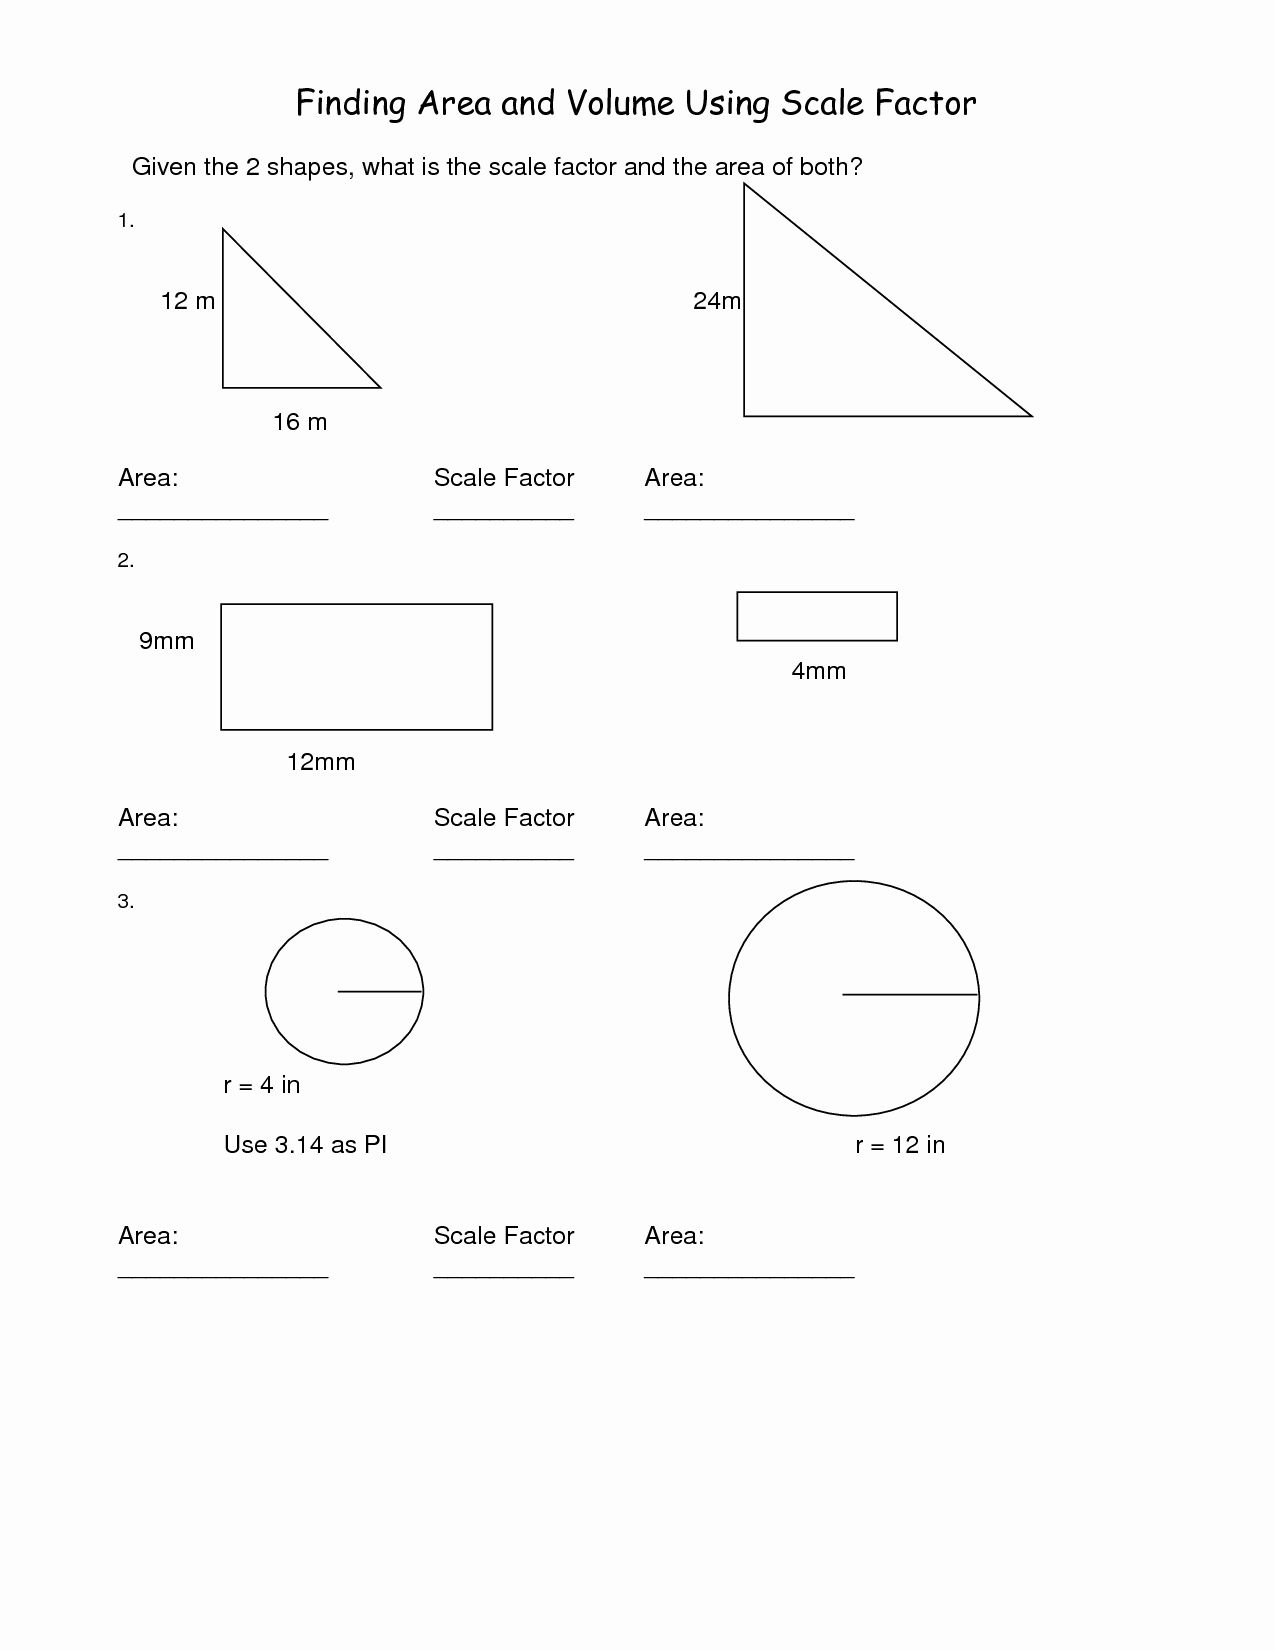 50 Finding Scale Factor Worksheet In